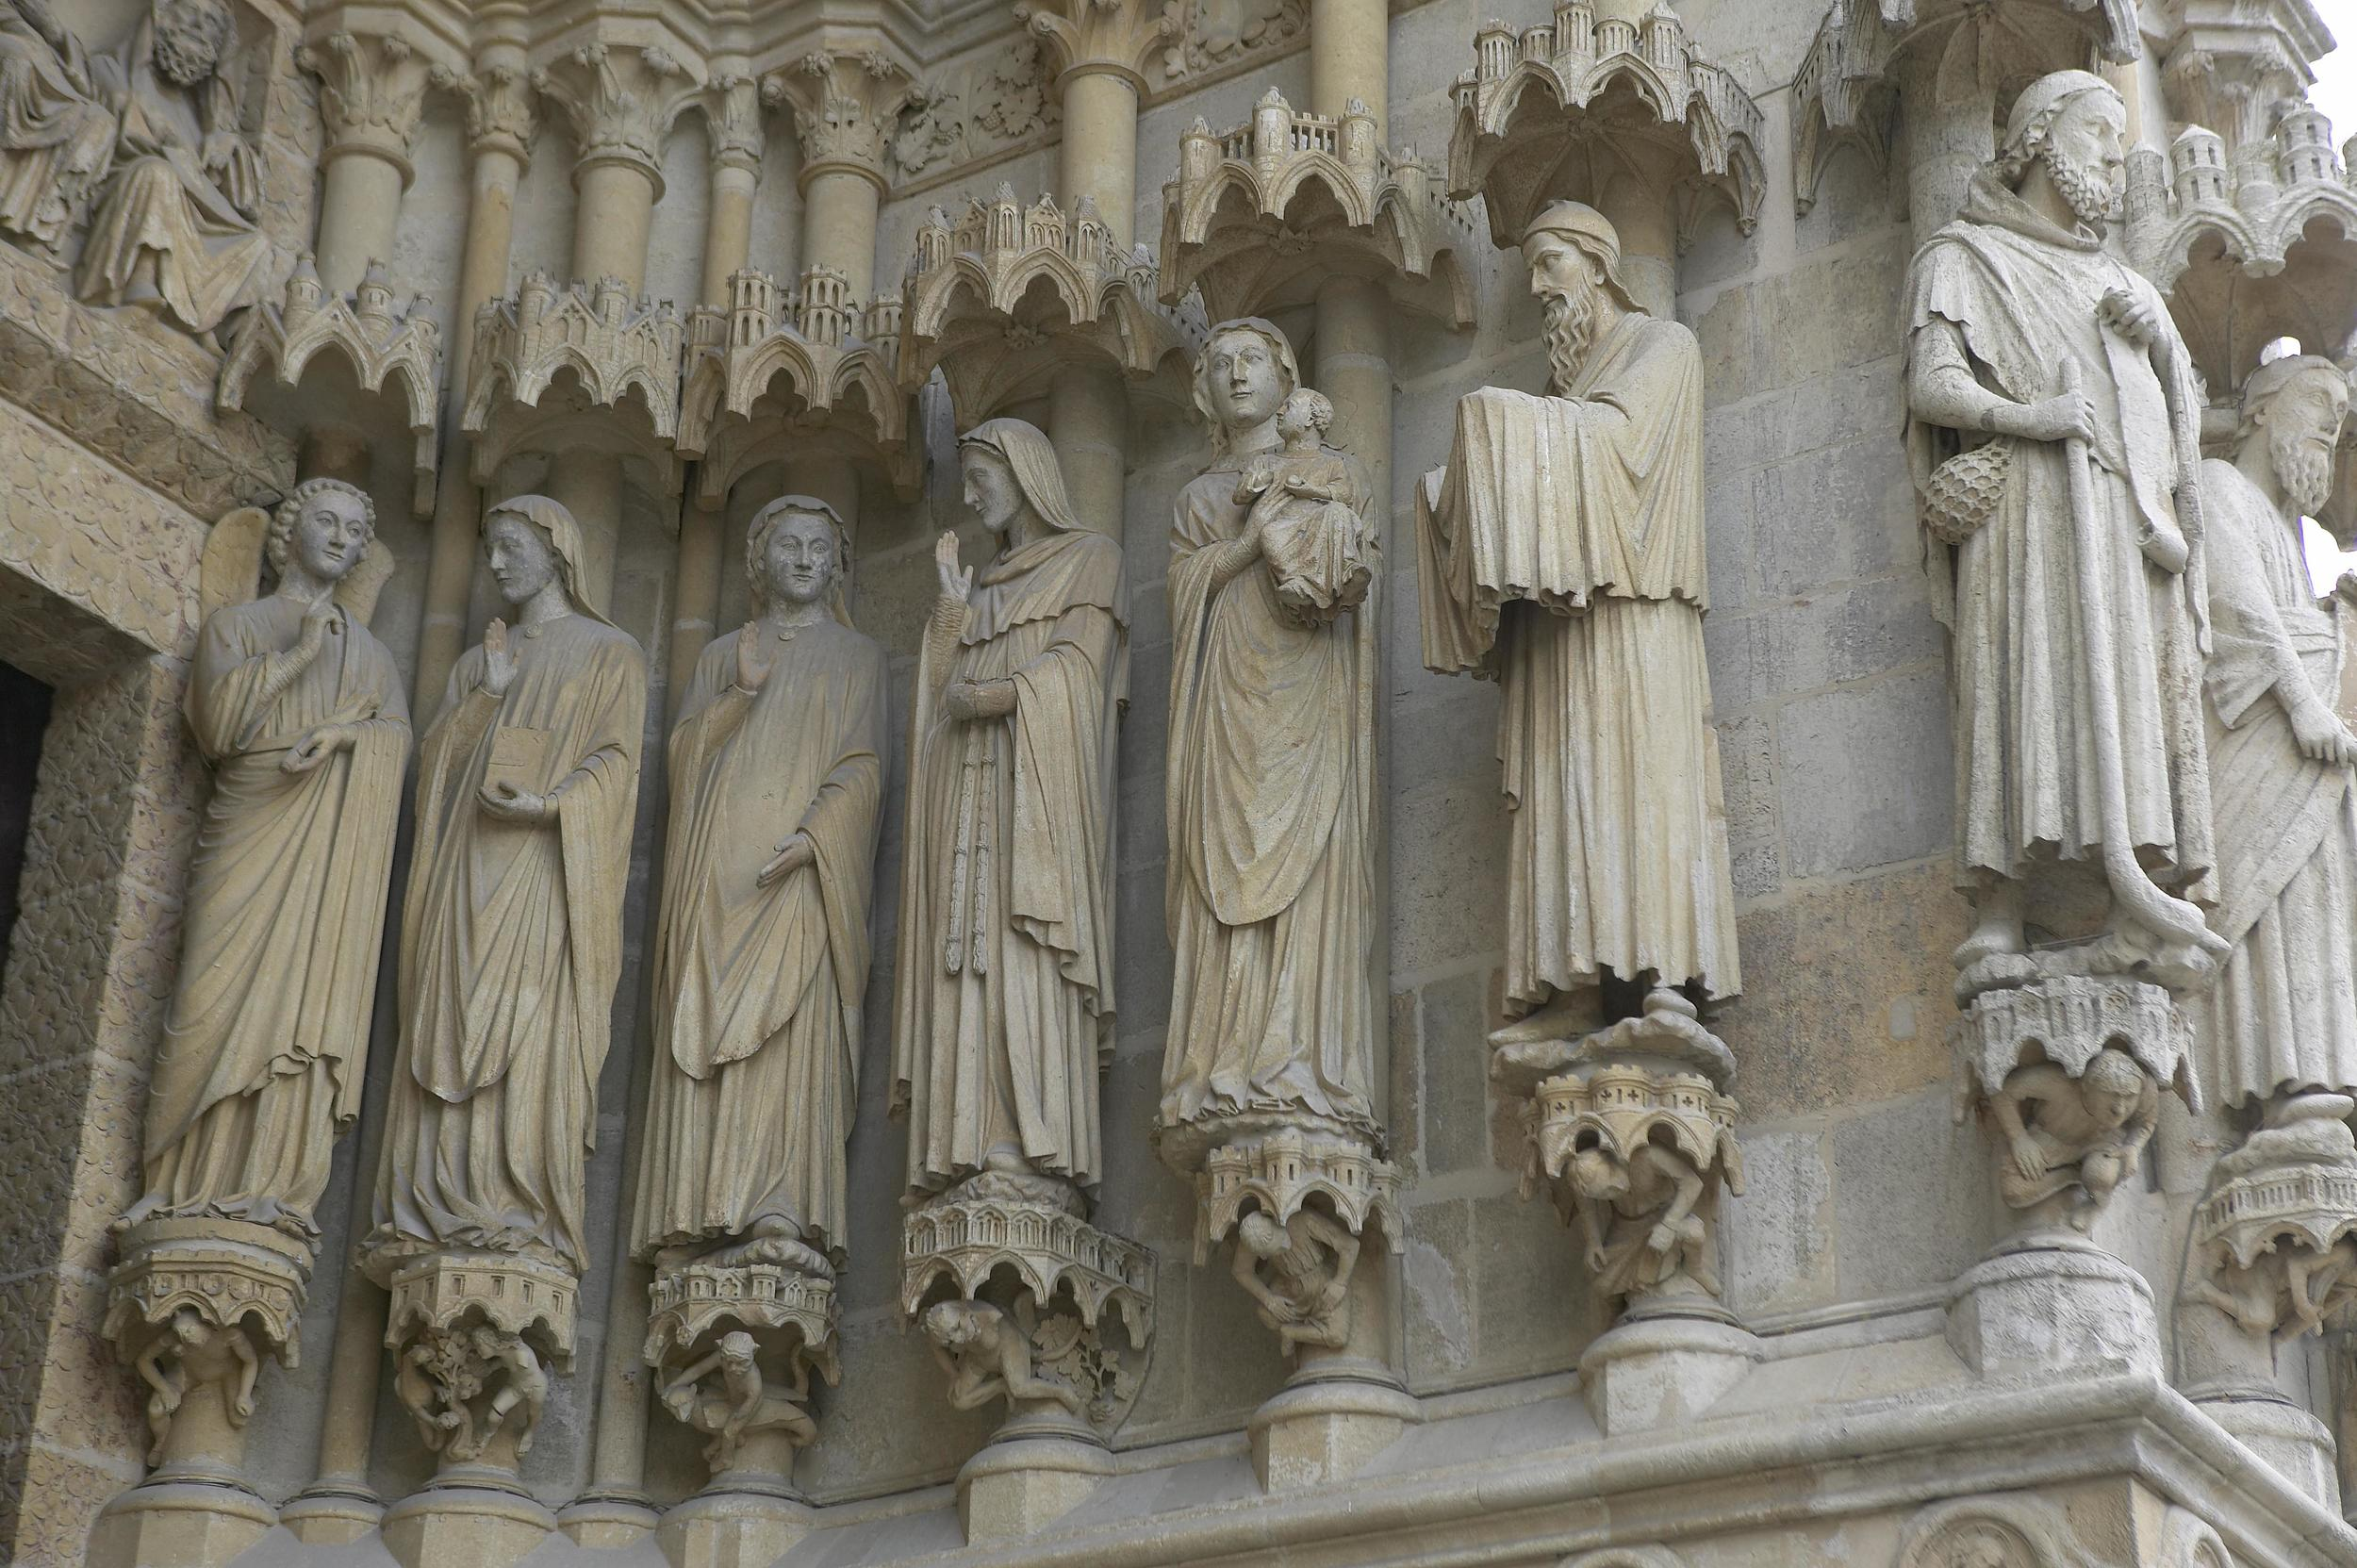 Jamb Figures: the Annunciation, the Visitation, and the Presentation in the Temple